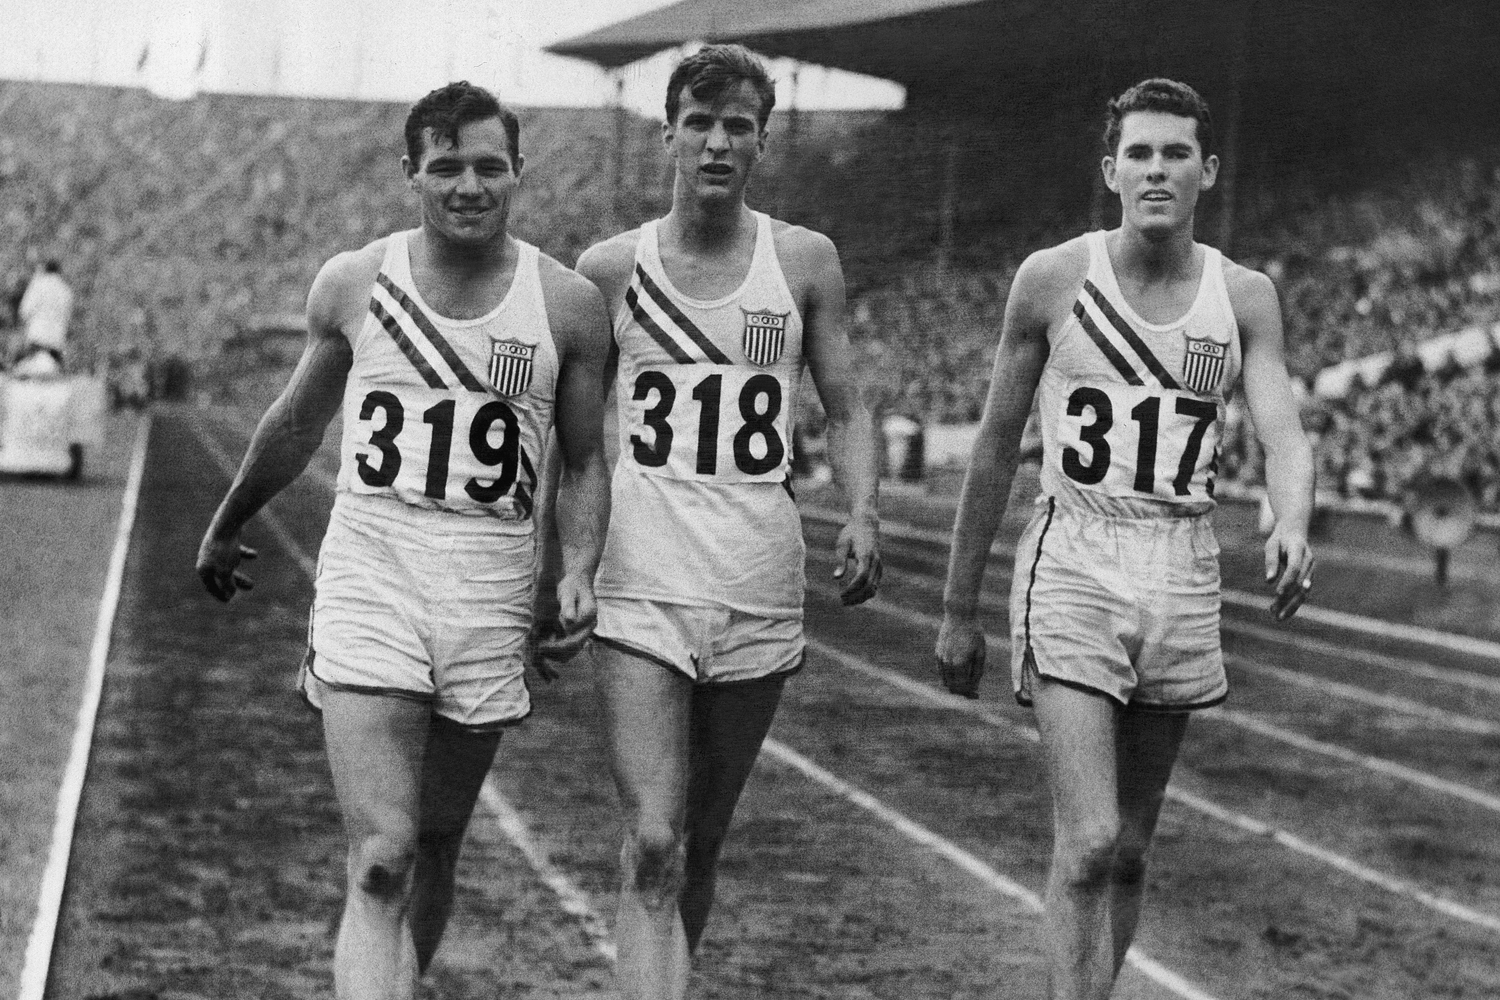 Craig Dixon (right) with two teammates at the 1948 Olympic games.